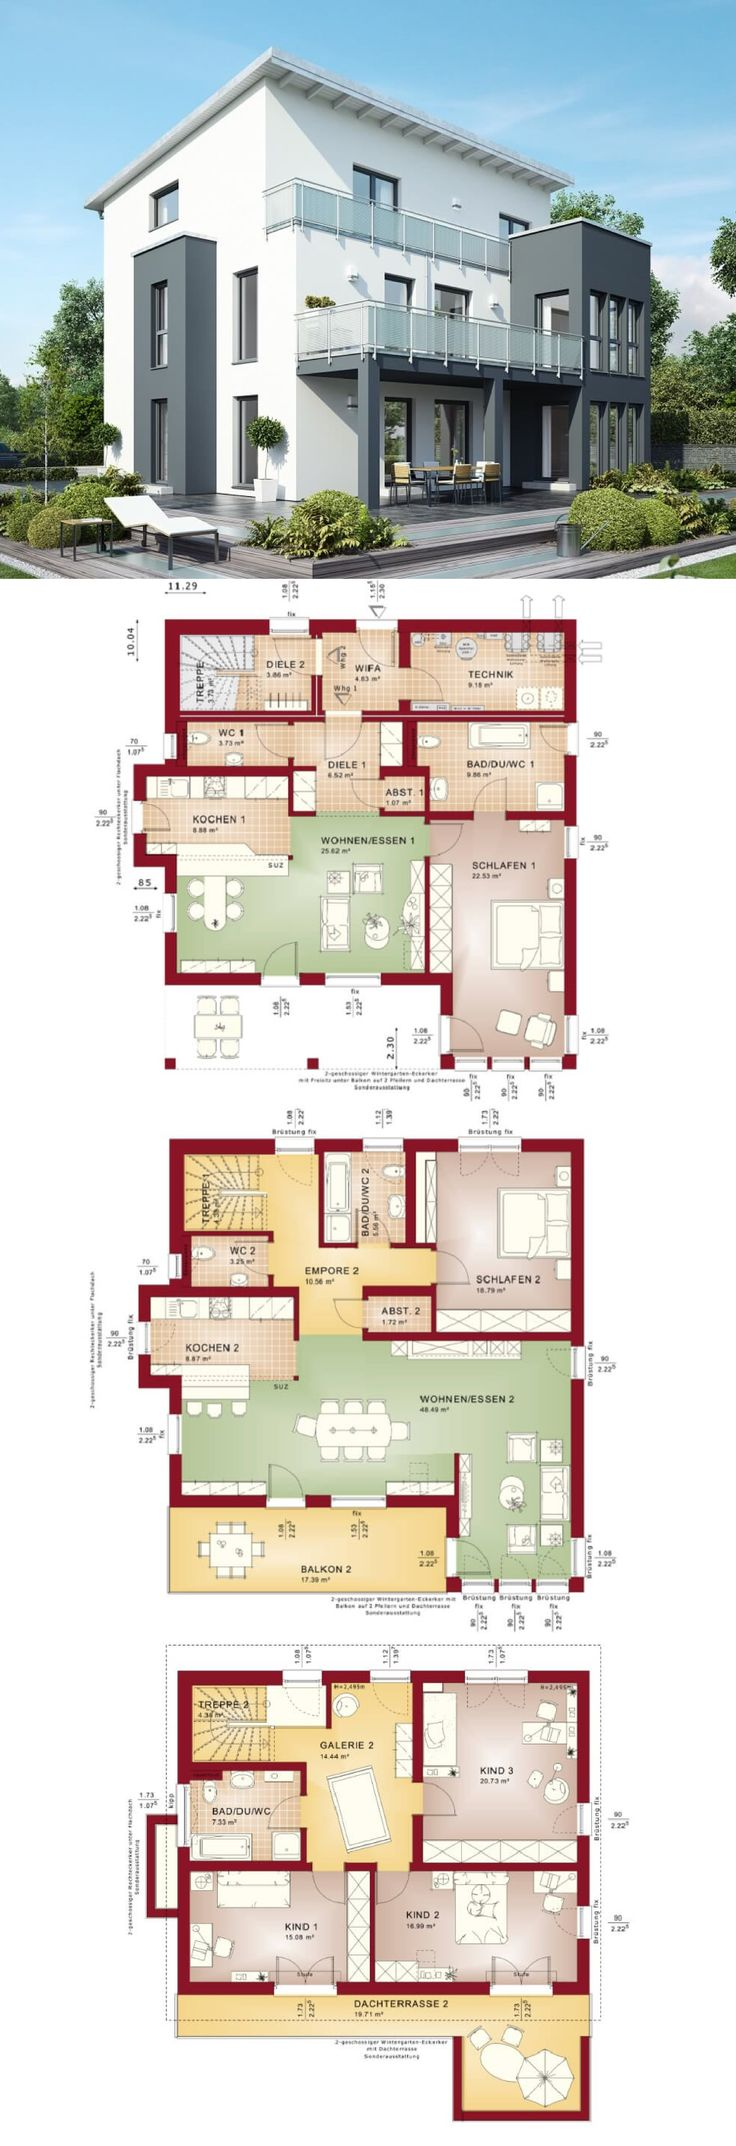 Einfaches hausdesign 2018  best wohnung images on pinterest  facades home ideas and homes